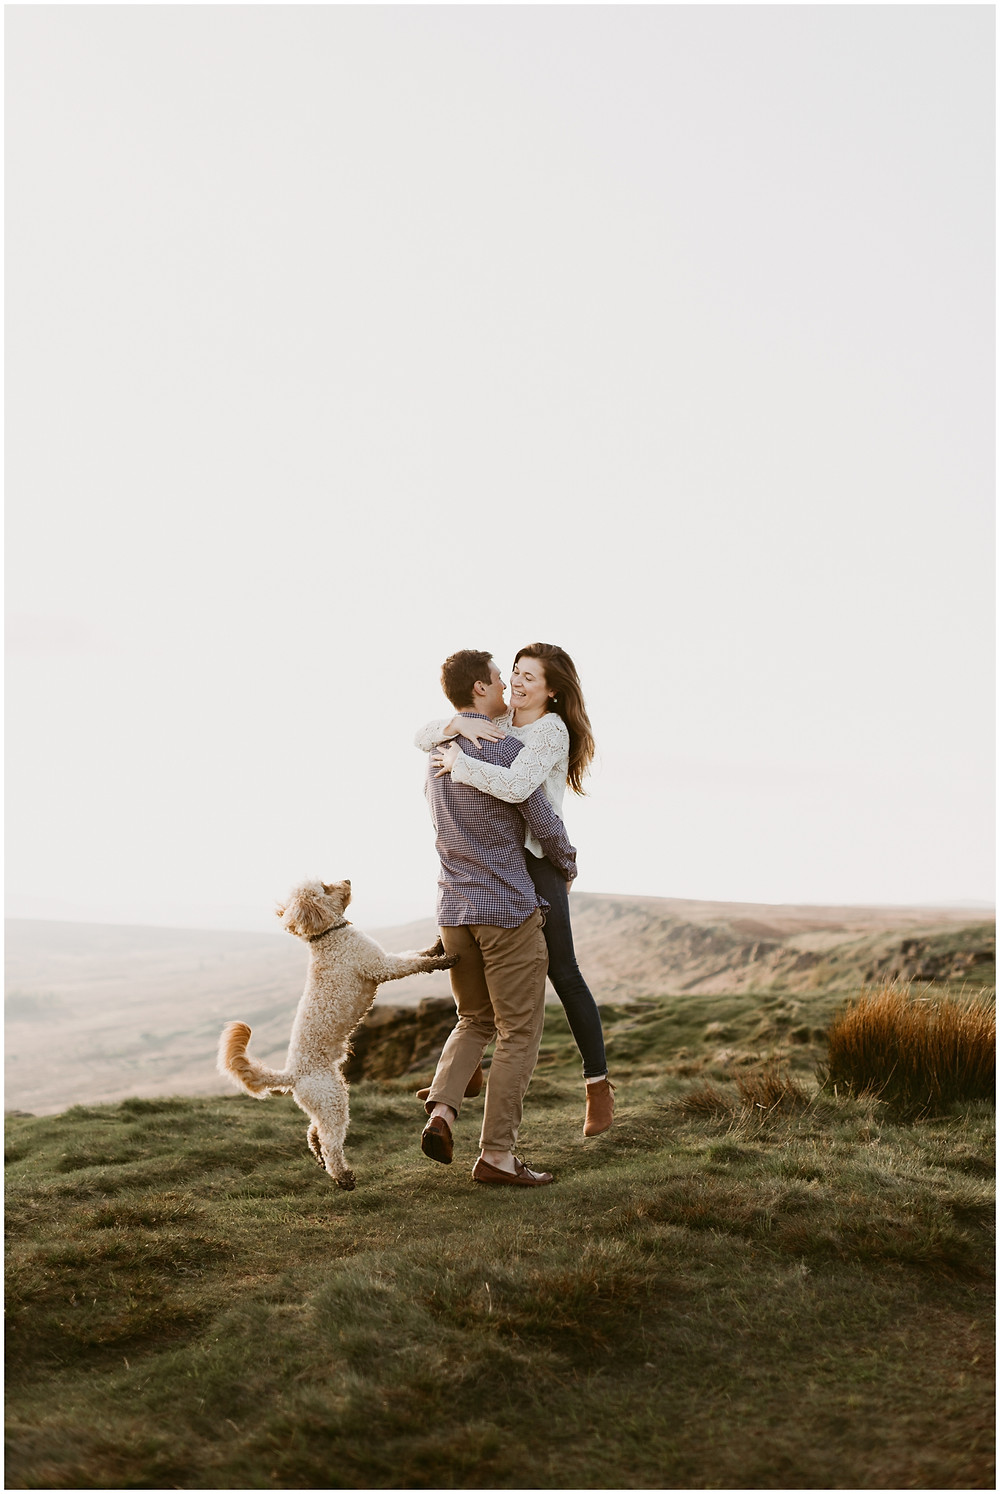 Engagement photos with your dog in England by Mountainaire Gatherings